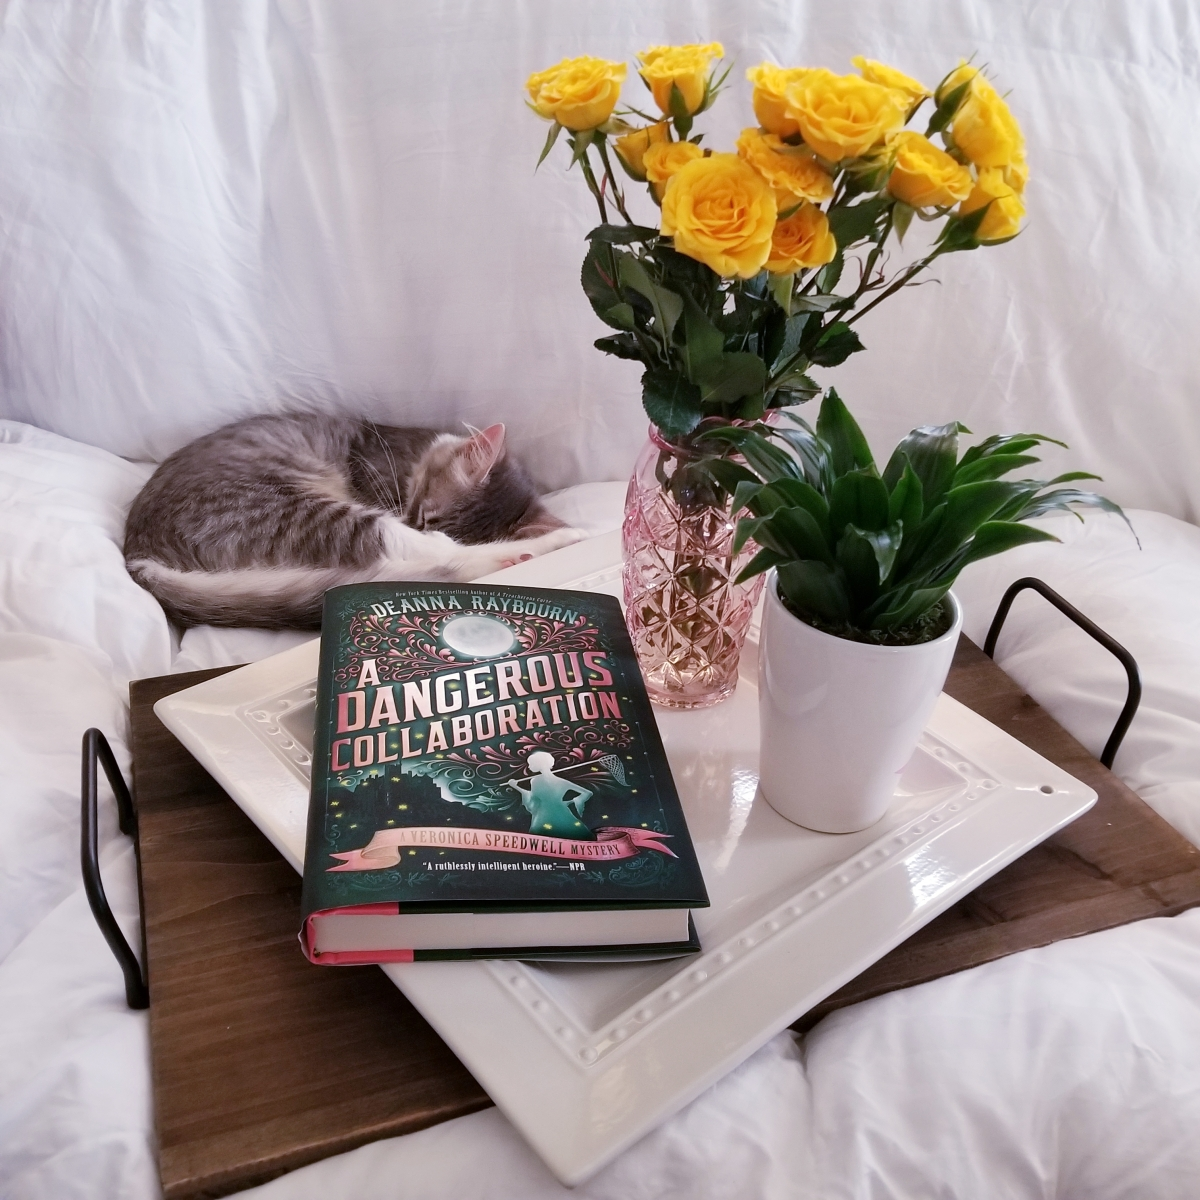 A Dangerous Collaboration by Deanna Raybourn #bookreview #tarheelreader #thrdangerous @deannaraybourn @berkleypub #adangerouscollaboration